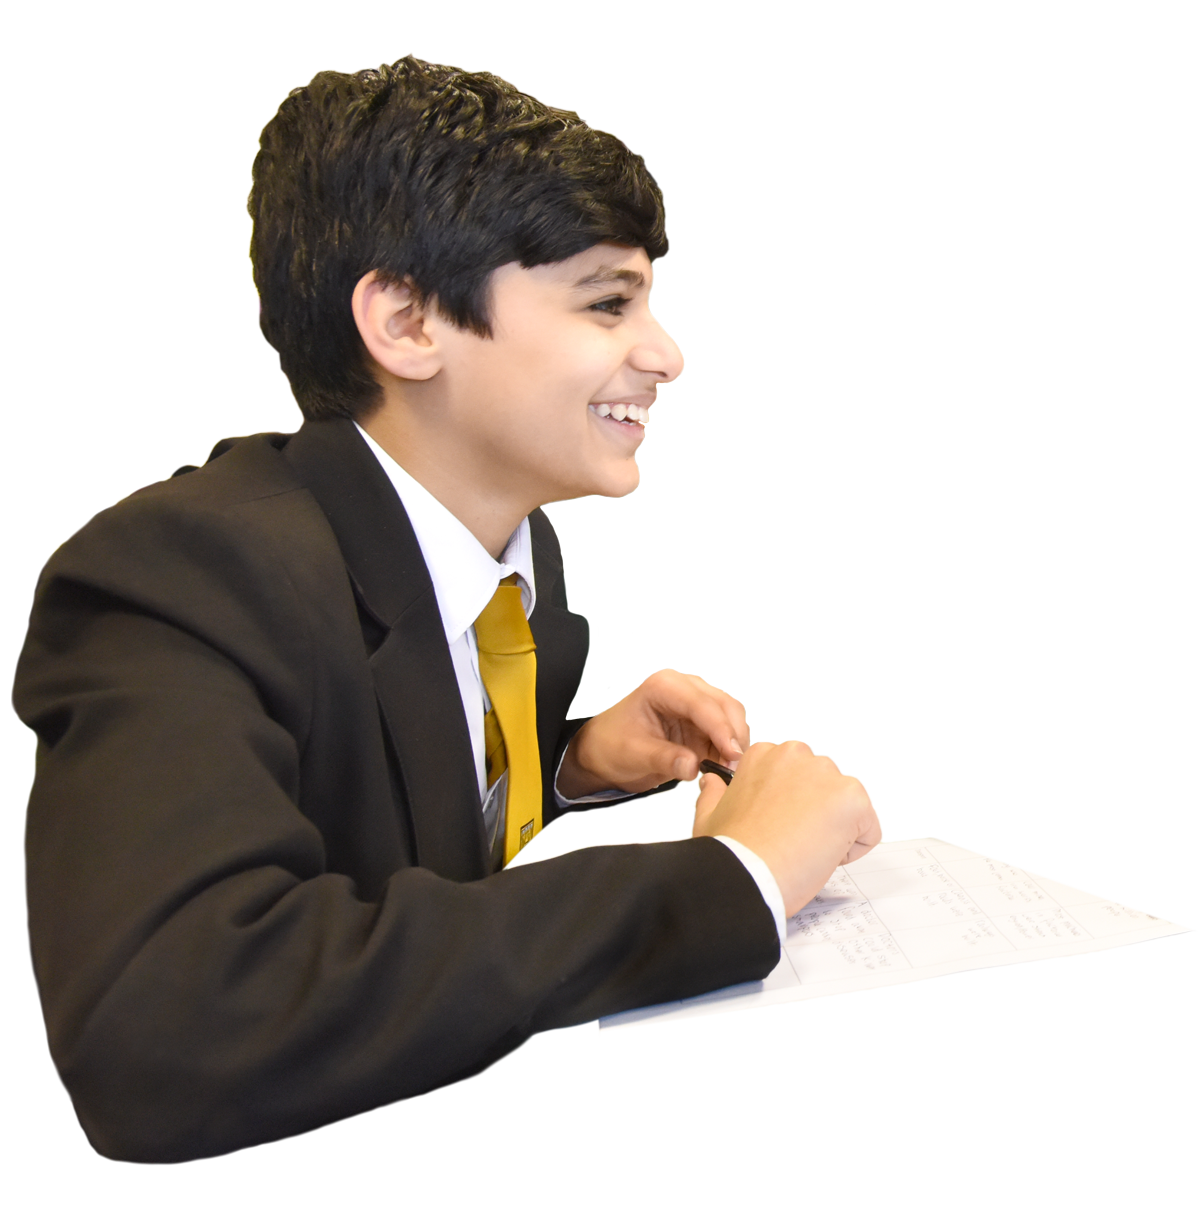 male student at desk taking notes